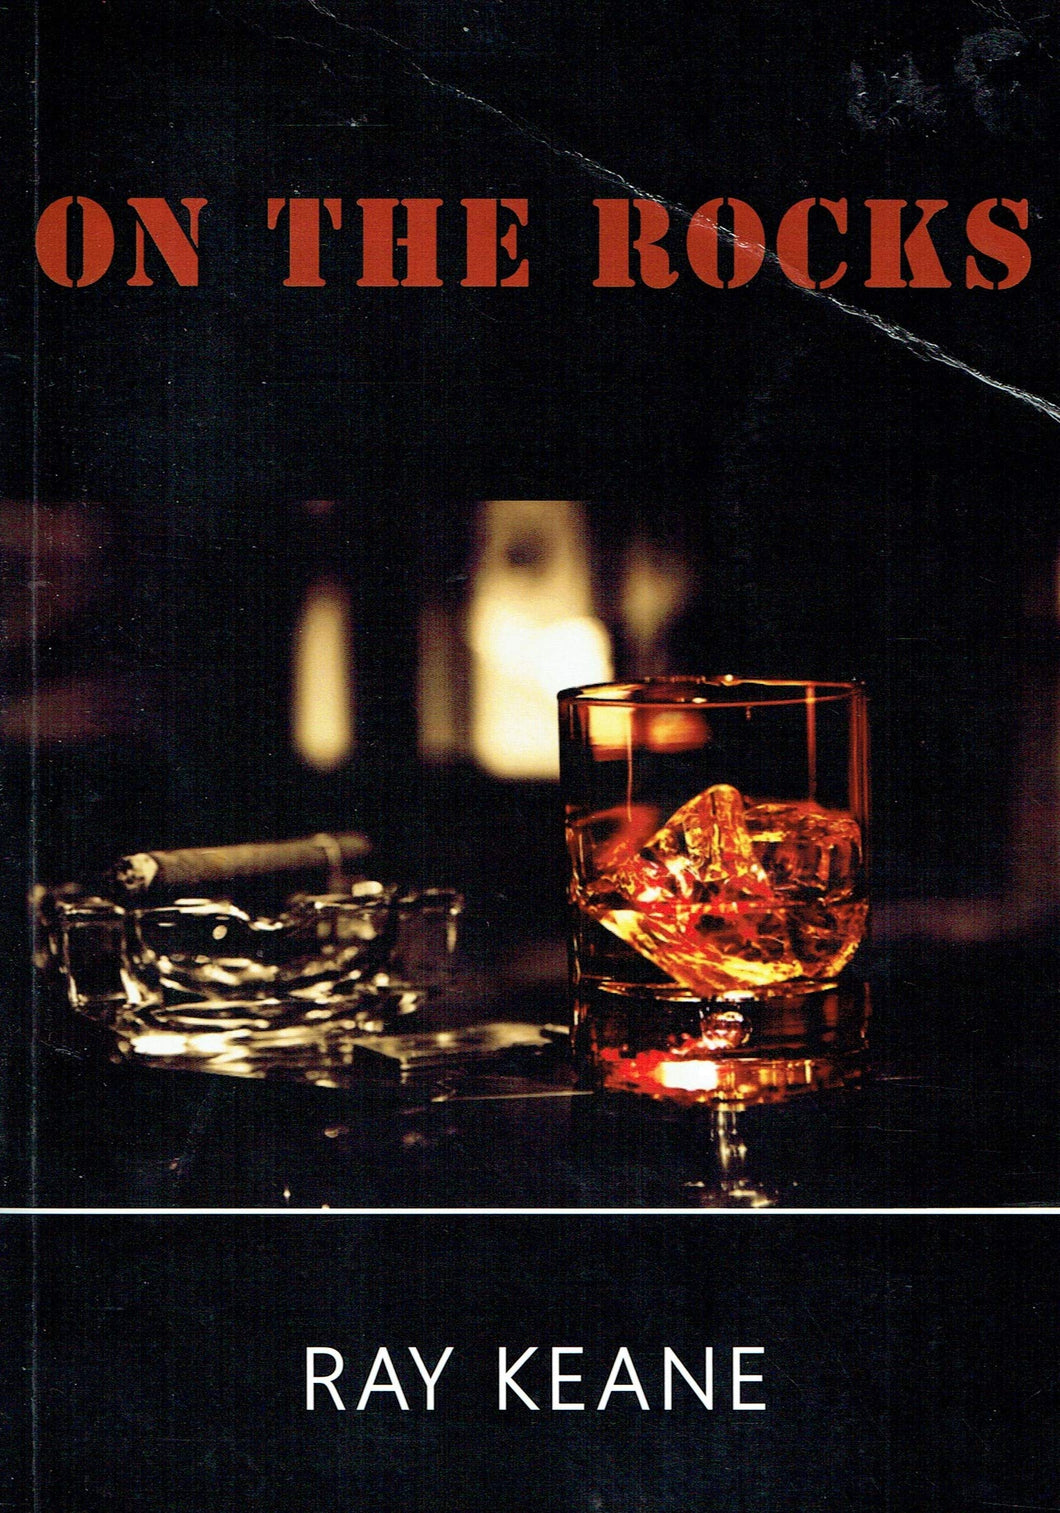 On the Rocks: Ray Keane